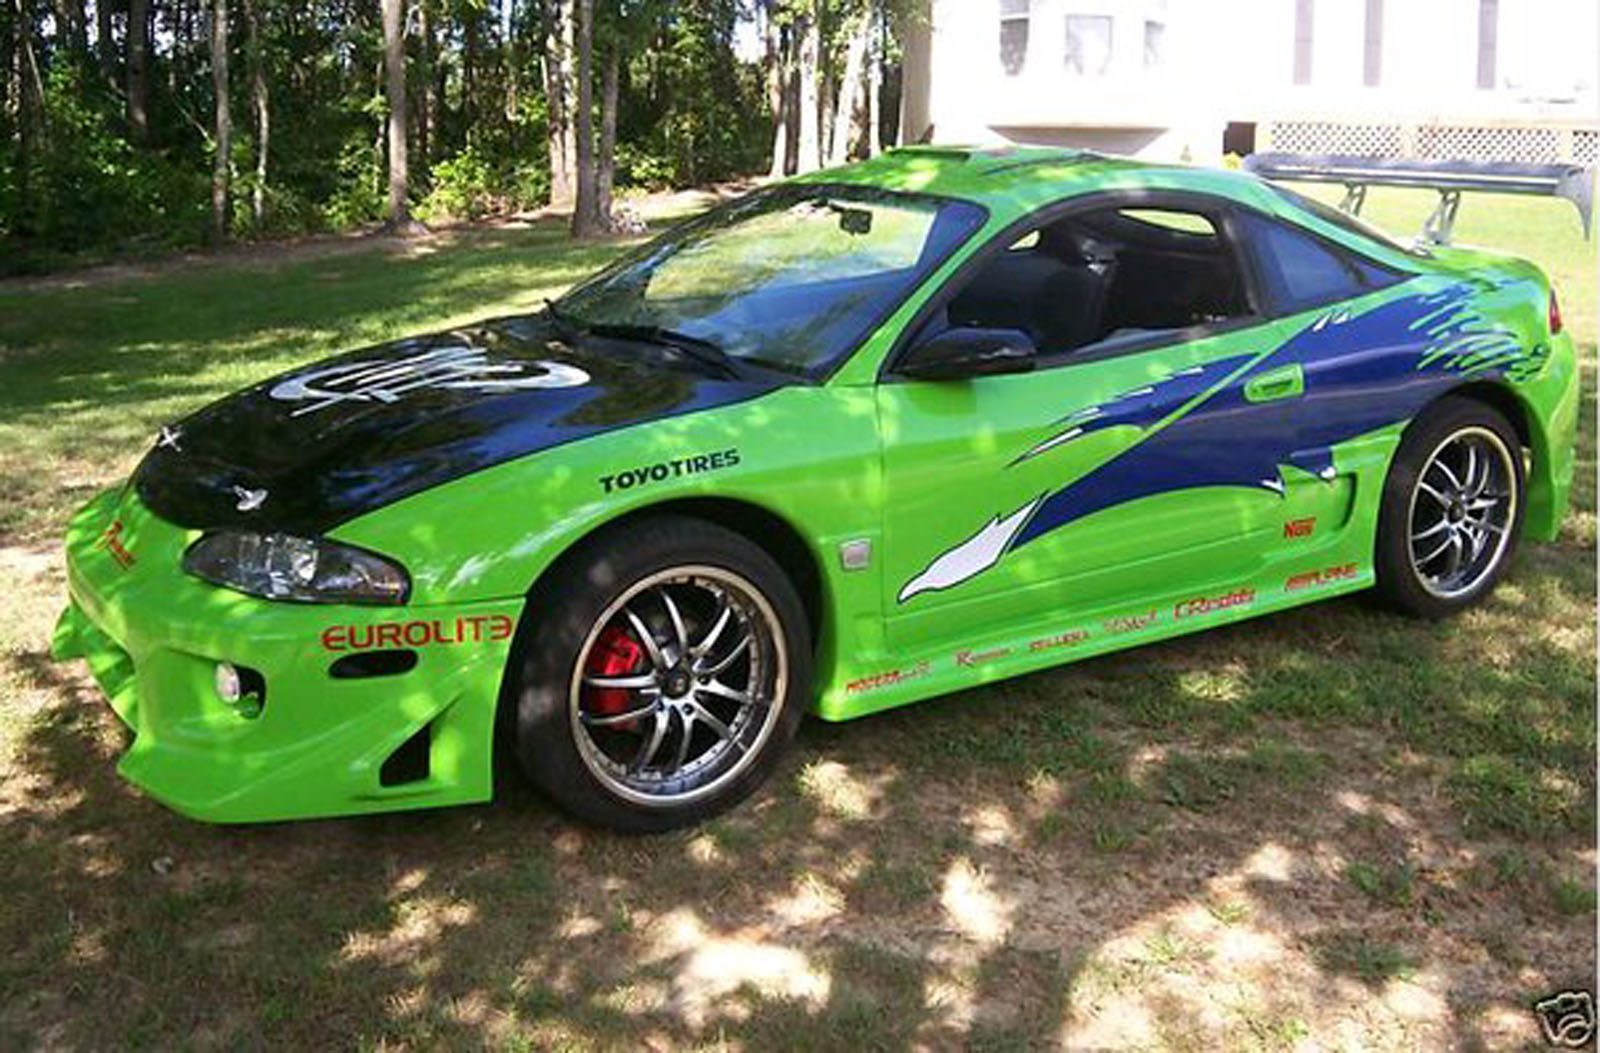 Mitsubishi Eclipse Cost >> 1997 Mitsubishi Eclipse For Sale | New York